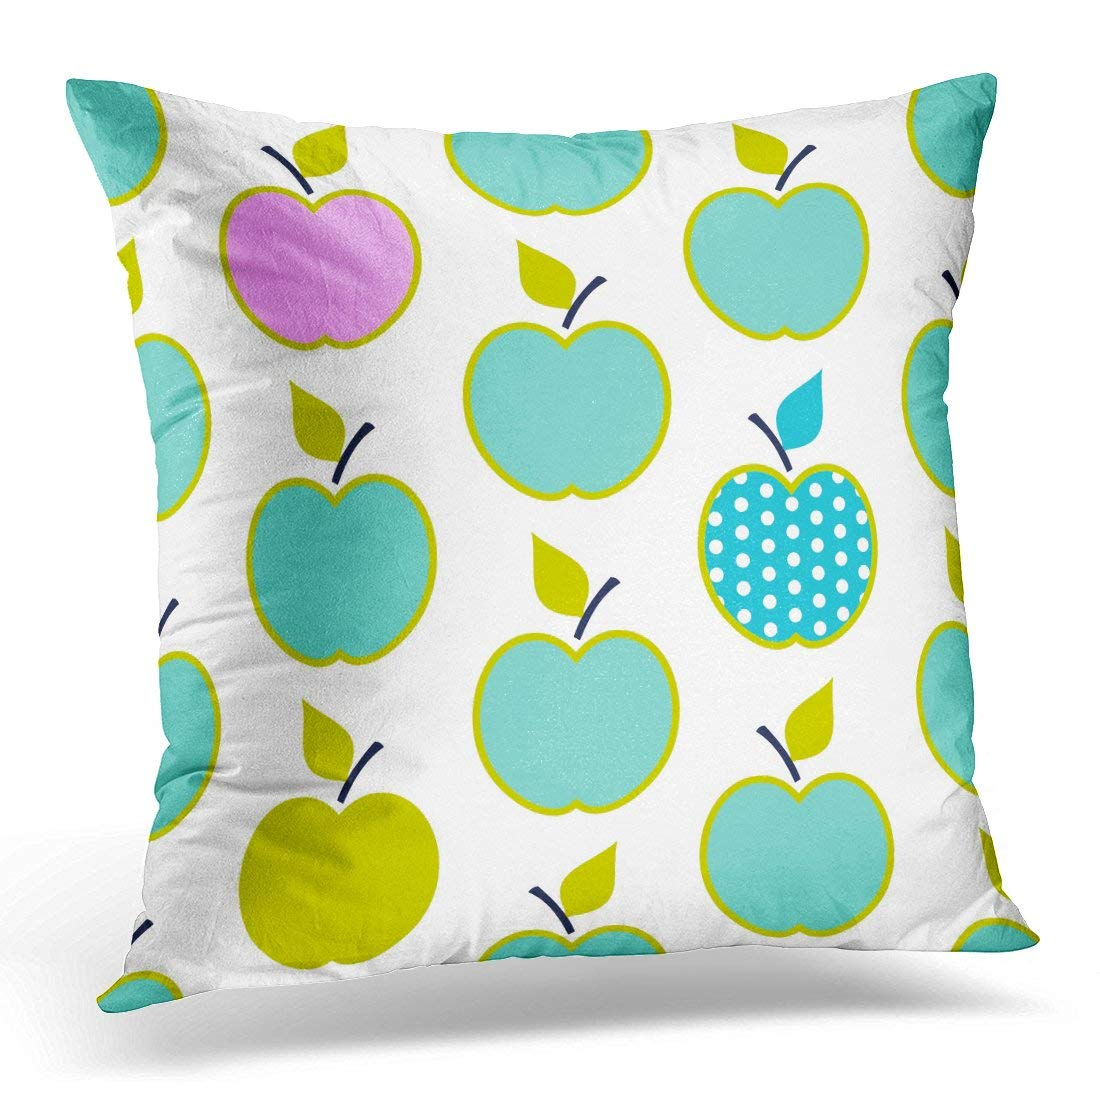 USART Blue Abstract Baby and Kids Pattern with Apples Cute Geometric Trendy Simple Design for Boys Pink Pillow Case Pillow Cover 18x18 inch